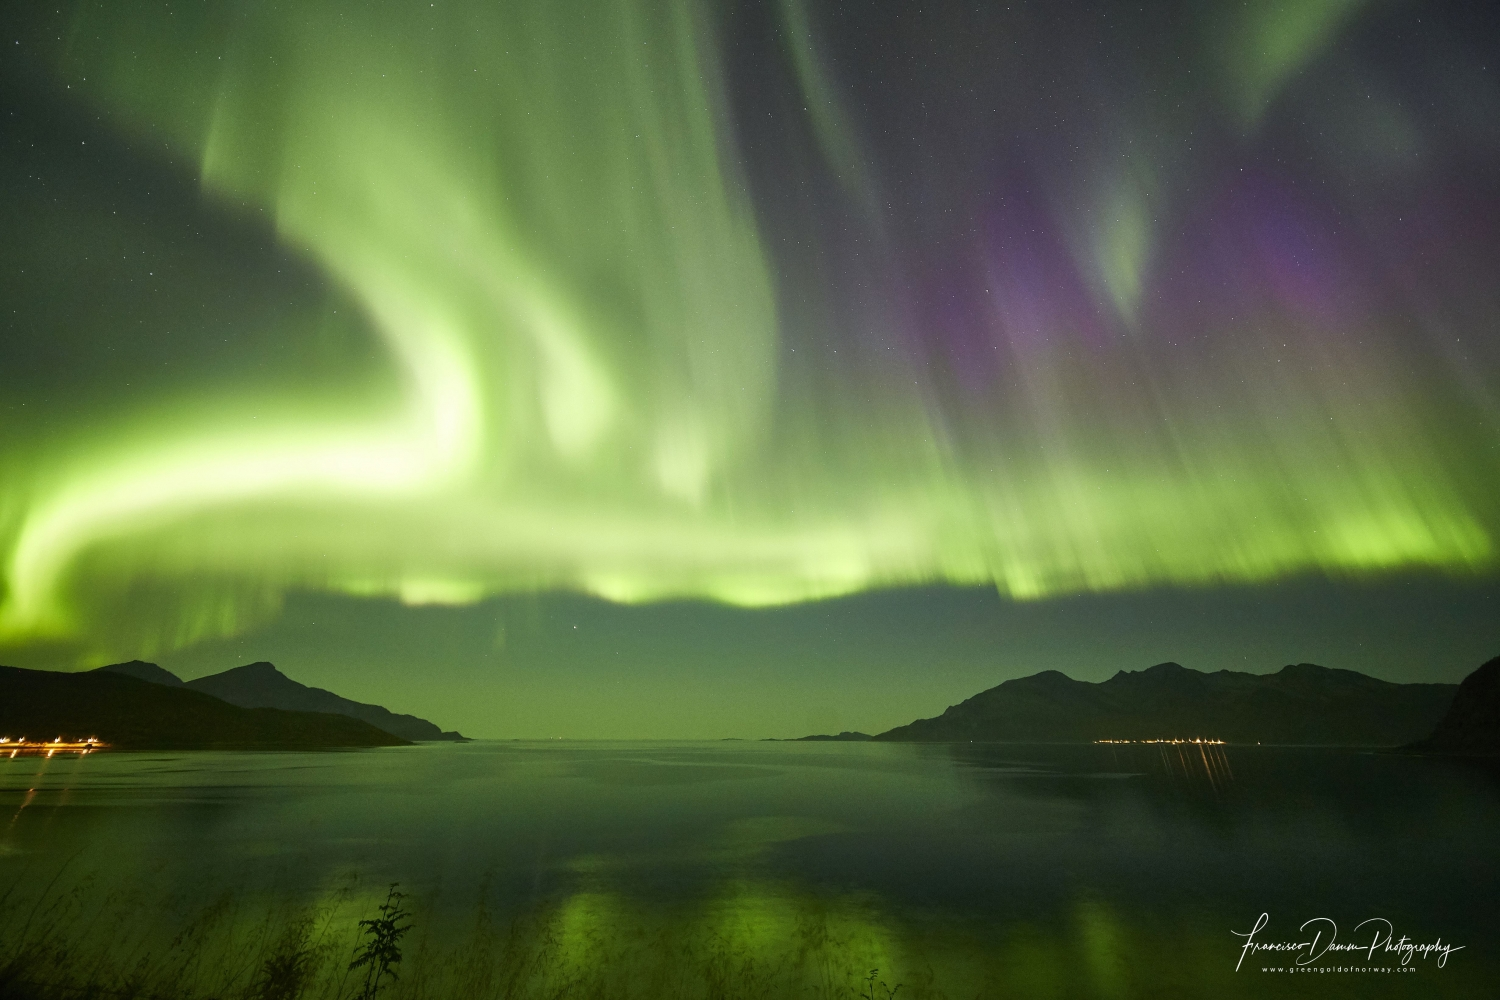 northern lights in the sky surrounded by beautiful nature